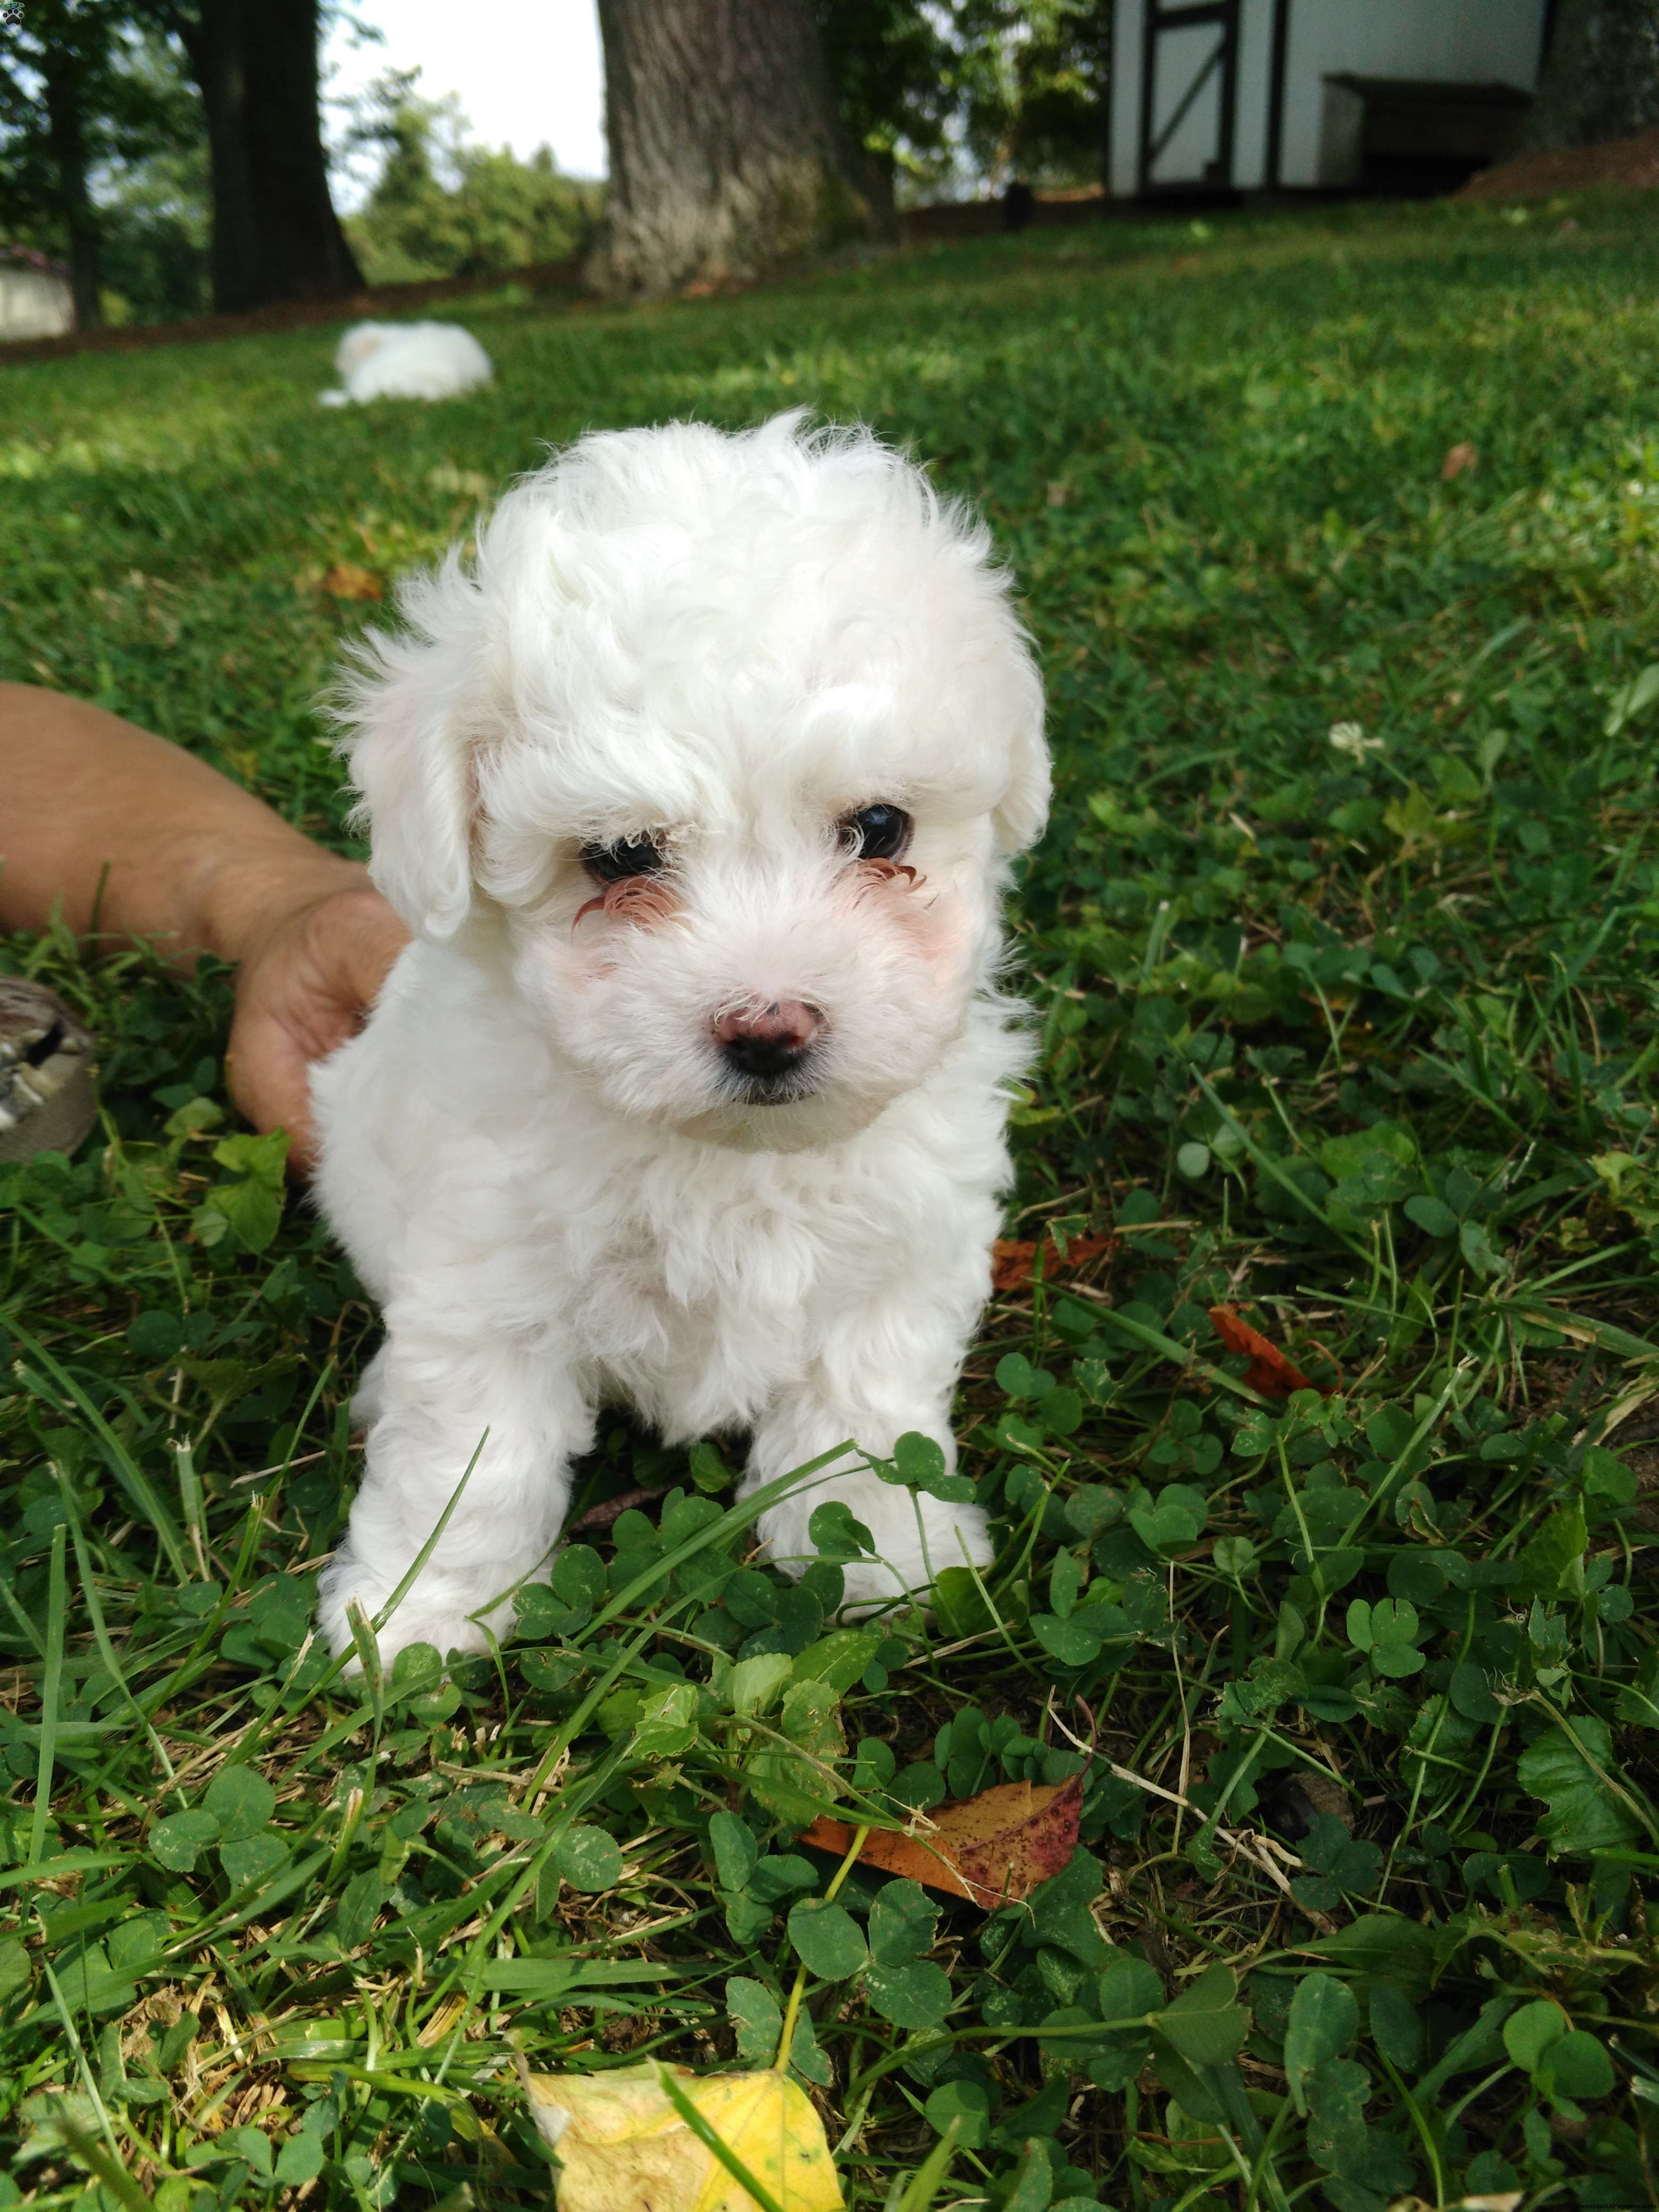 Shichon puppies for sale in indiana - Macie Shichon Teddy Bear Puppy